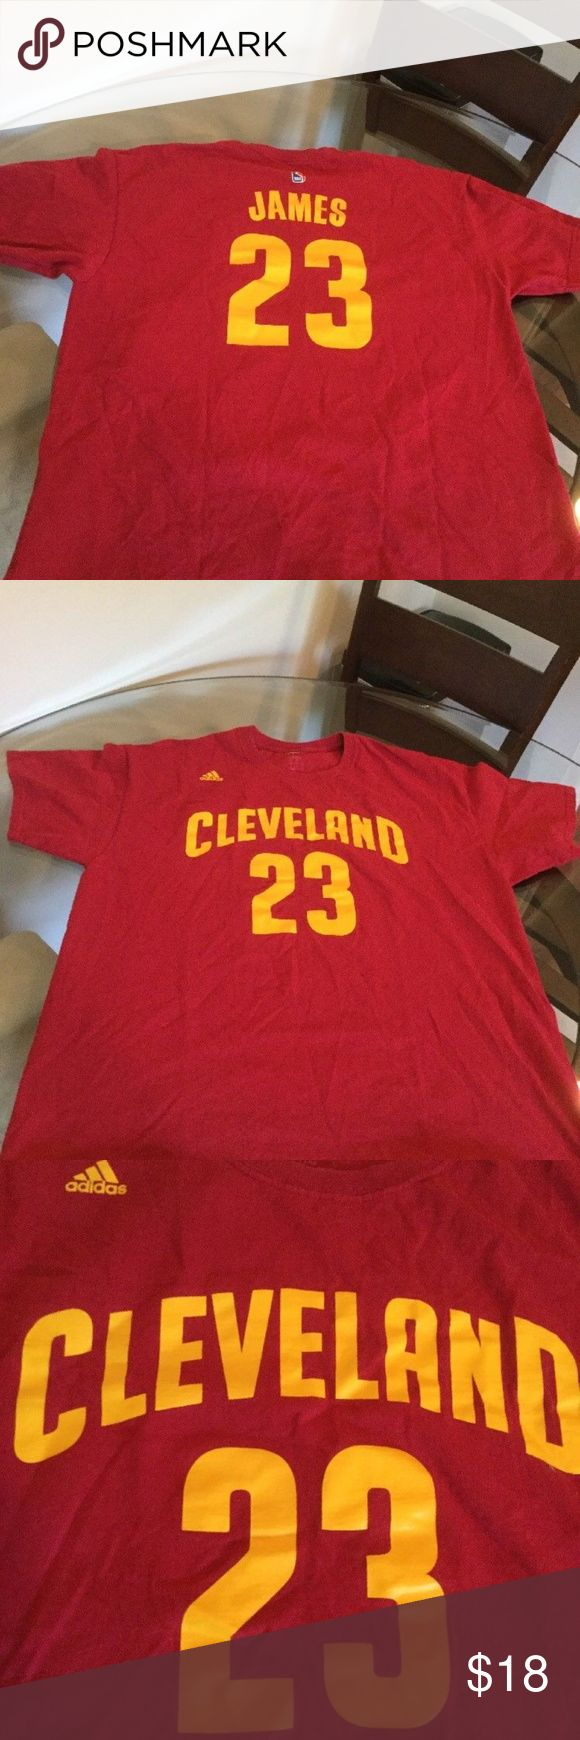 Cleveland Cavaliers Lebron James Jersey Shirt Cleveland Cavaliers Cavs Lebron James Red Adidas Jersey T-Shirt  Used - Excellent Condition - See Pics!!!  Size - Large adidas Shirts Tees - Short Sleeve